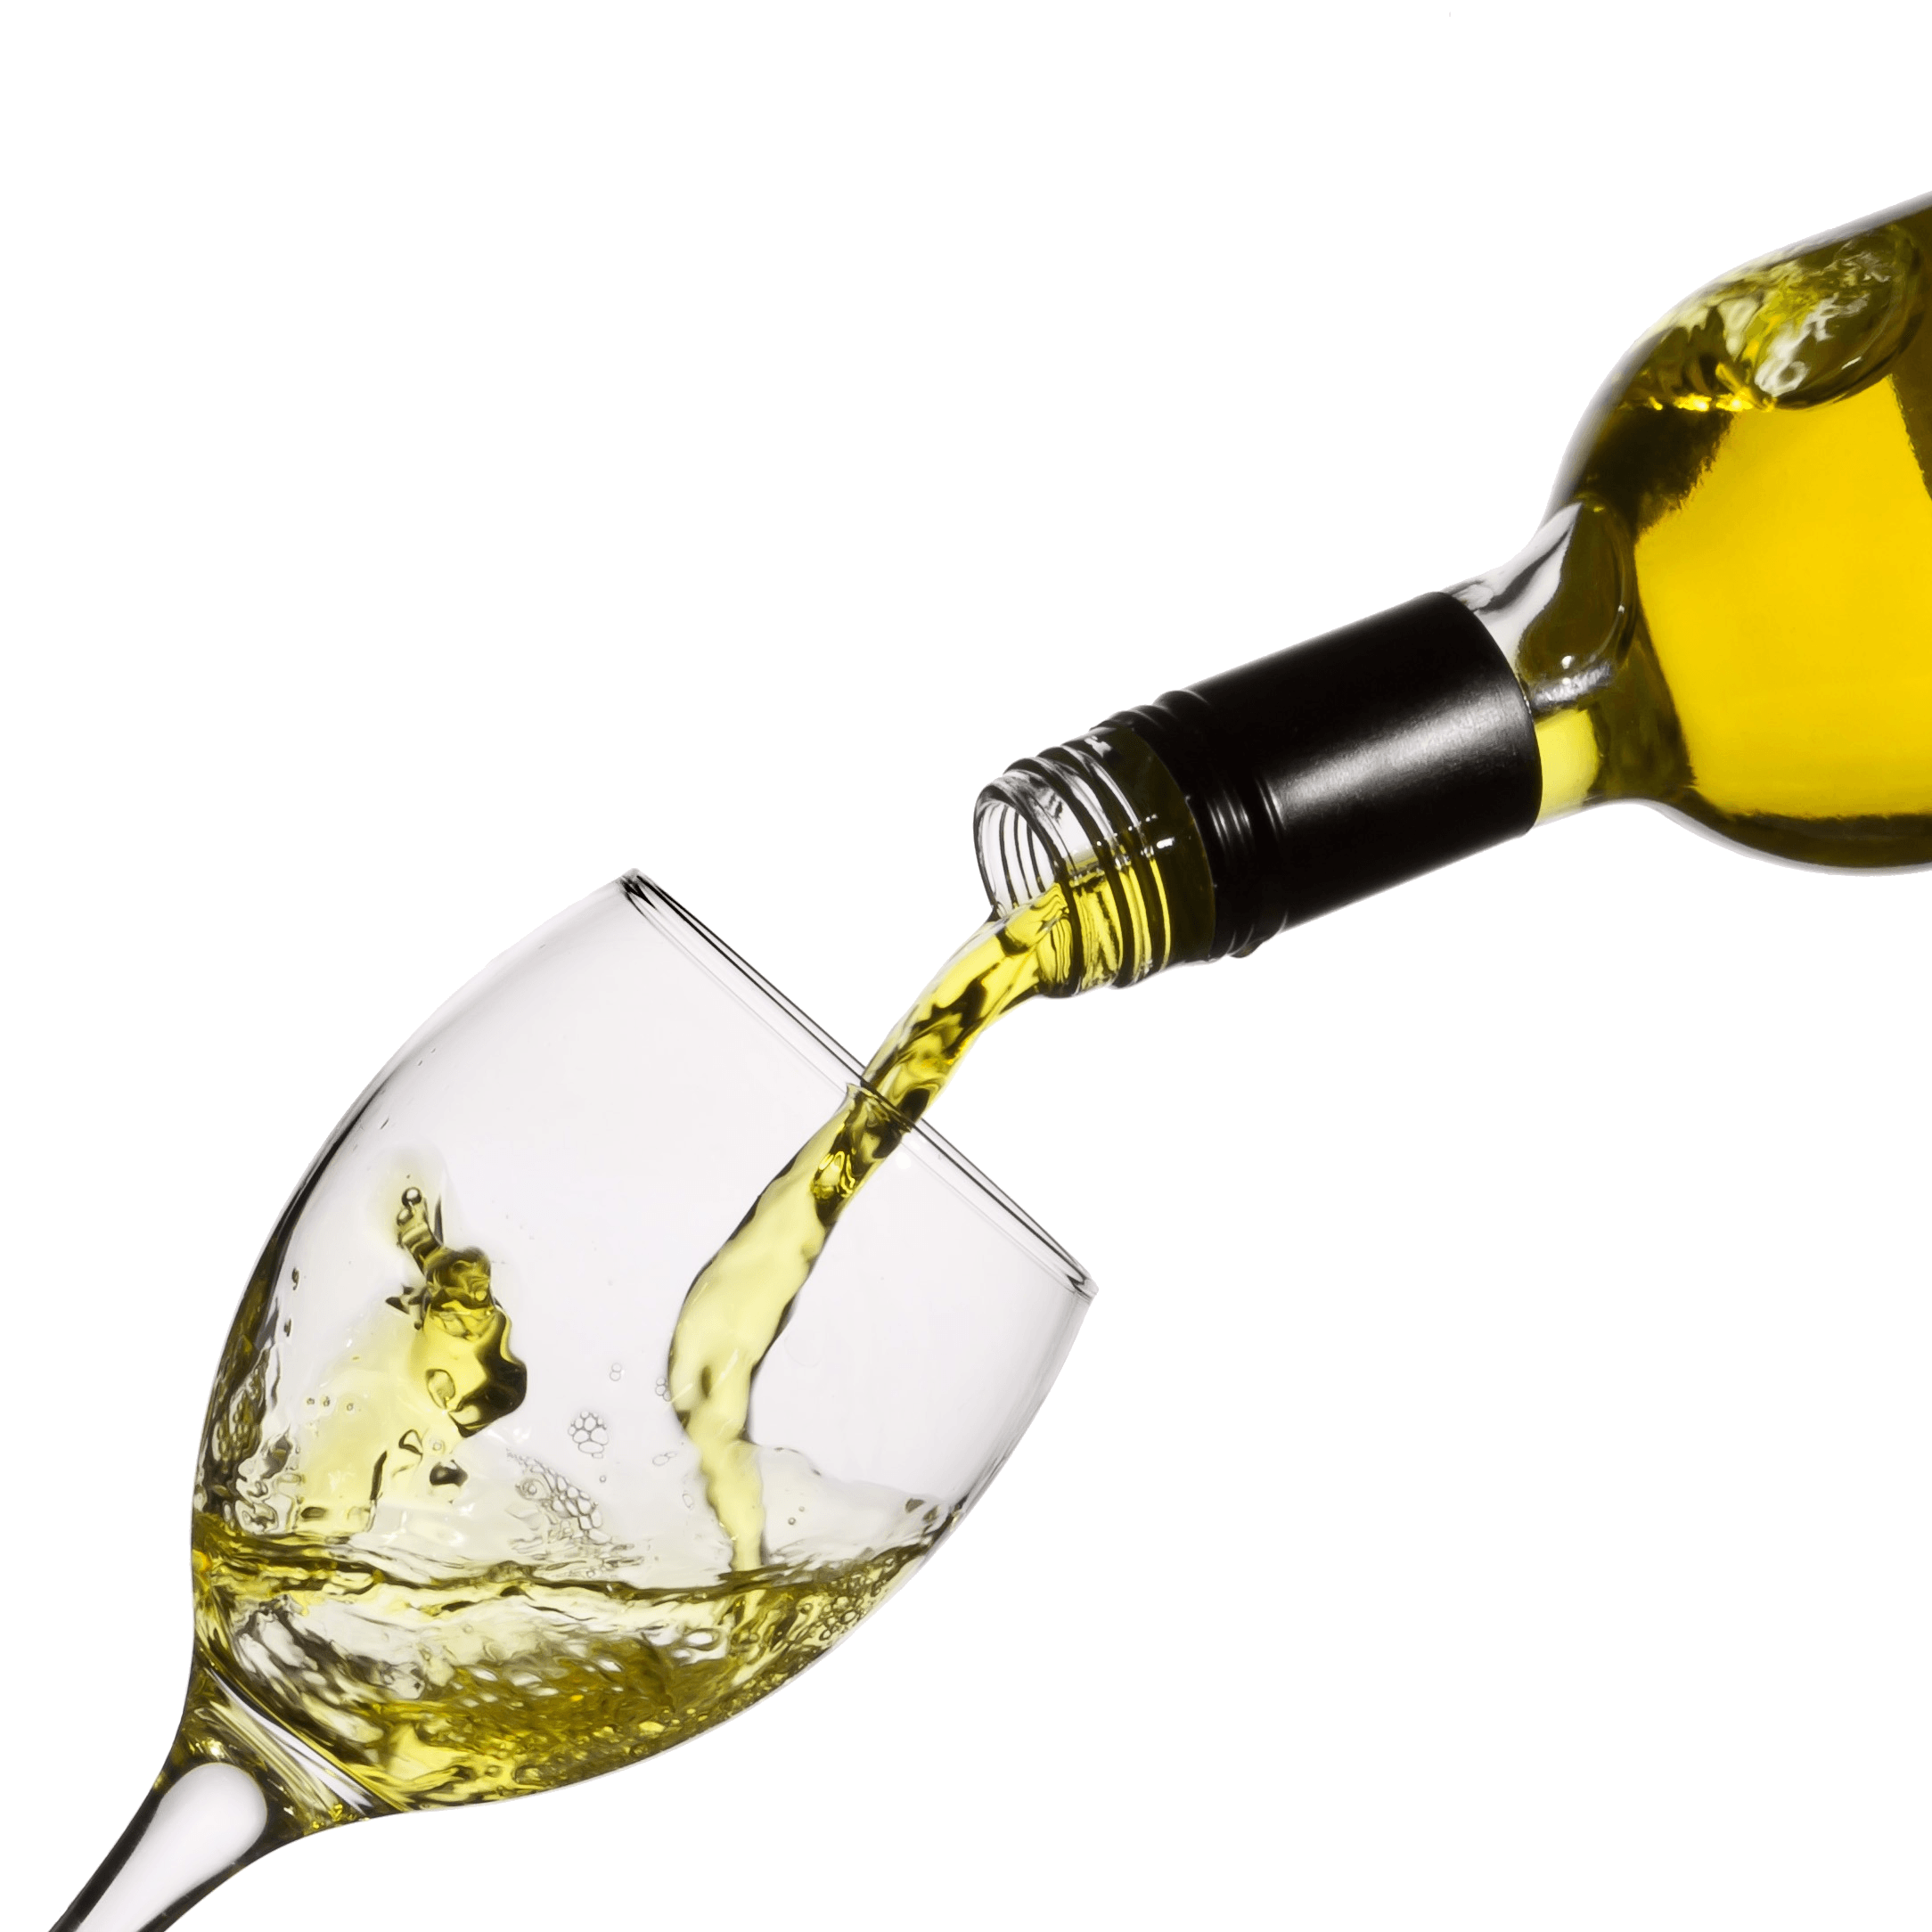 Download PNG image - Wine Glass Png Image - Wine PNG